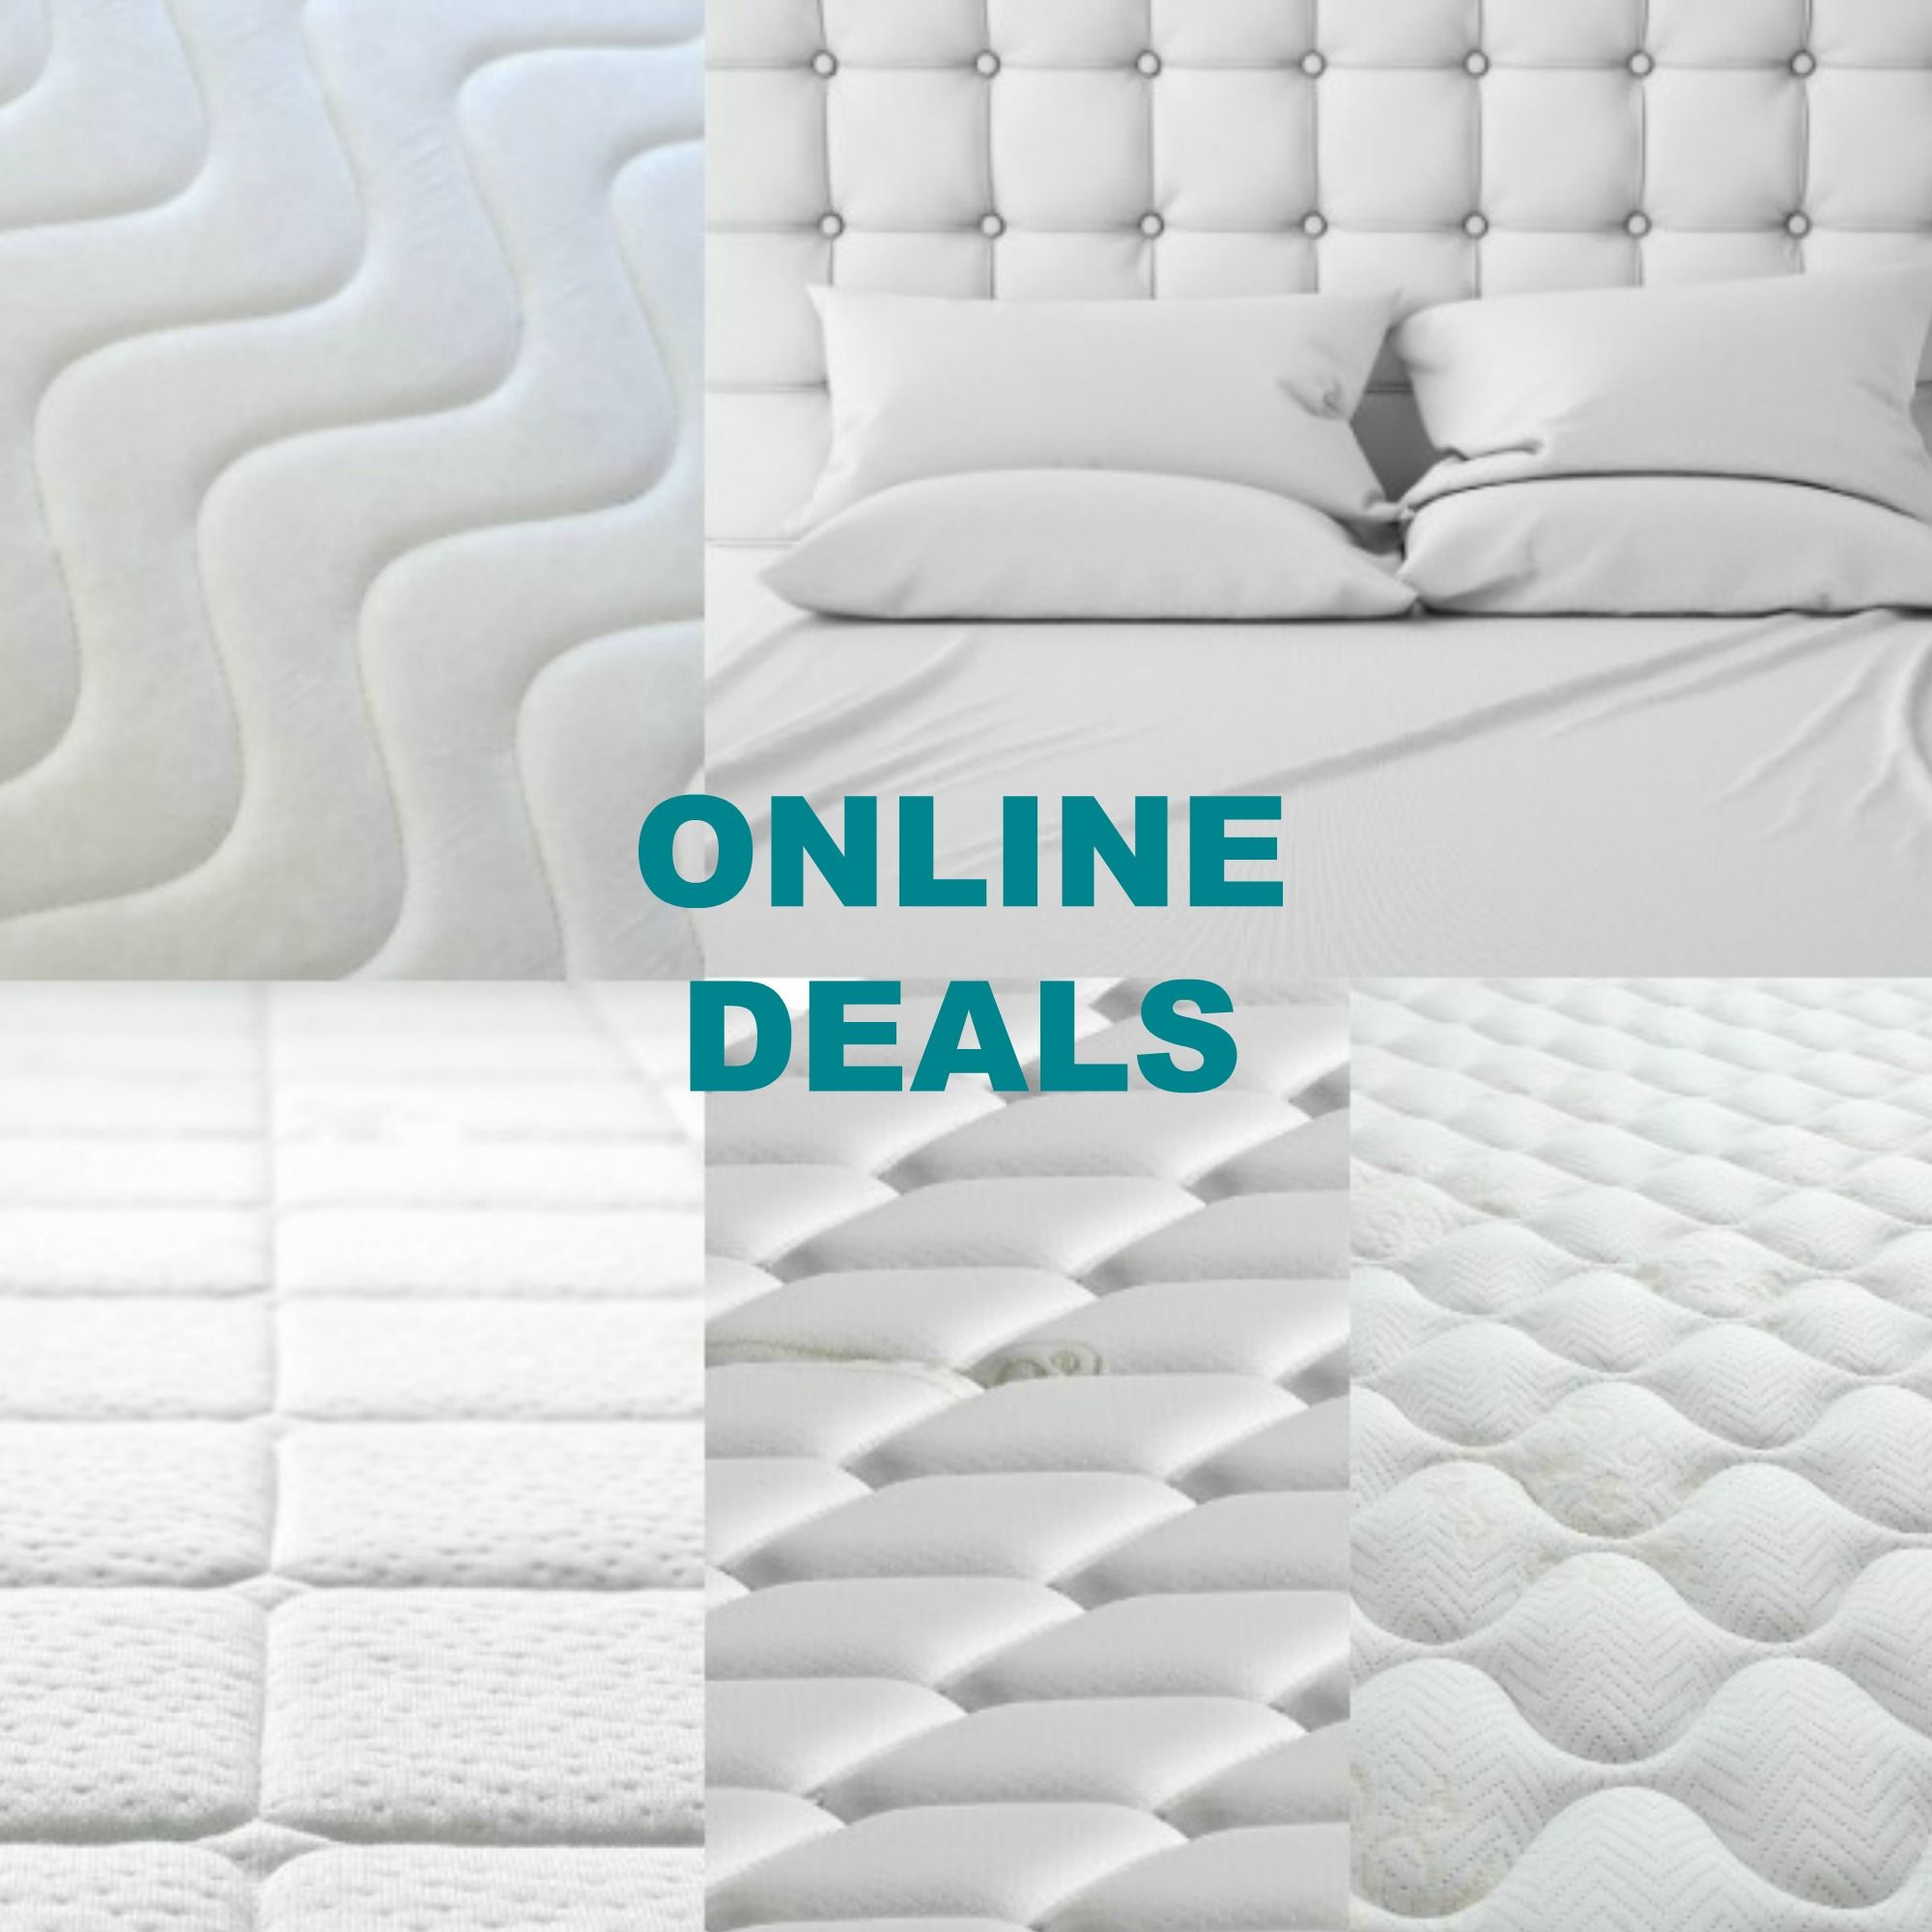 canadian mattress sale sleep classic canada for attachment collection mississauga masters isabella yorkdale best sales product gta mattresses